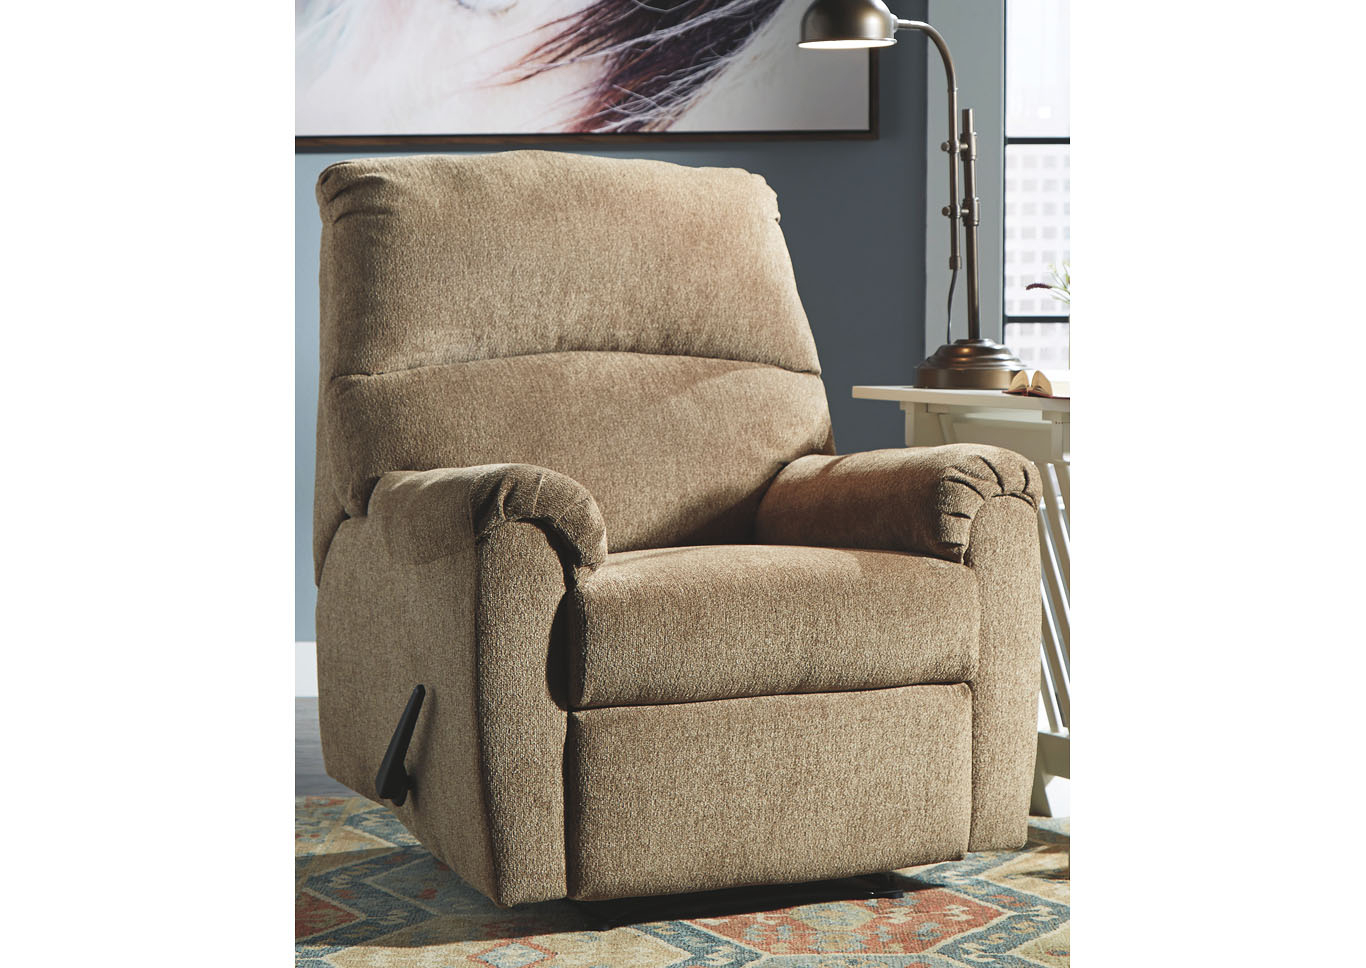 Nerviano Mocha Recliner J&D Furniture | Vineland, Nj With Regard To Vineland Polyester Swivel Armchairs (View 11 of 15)